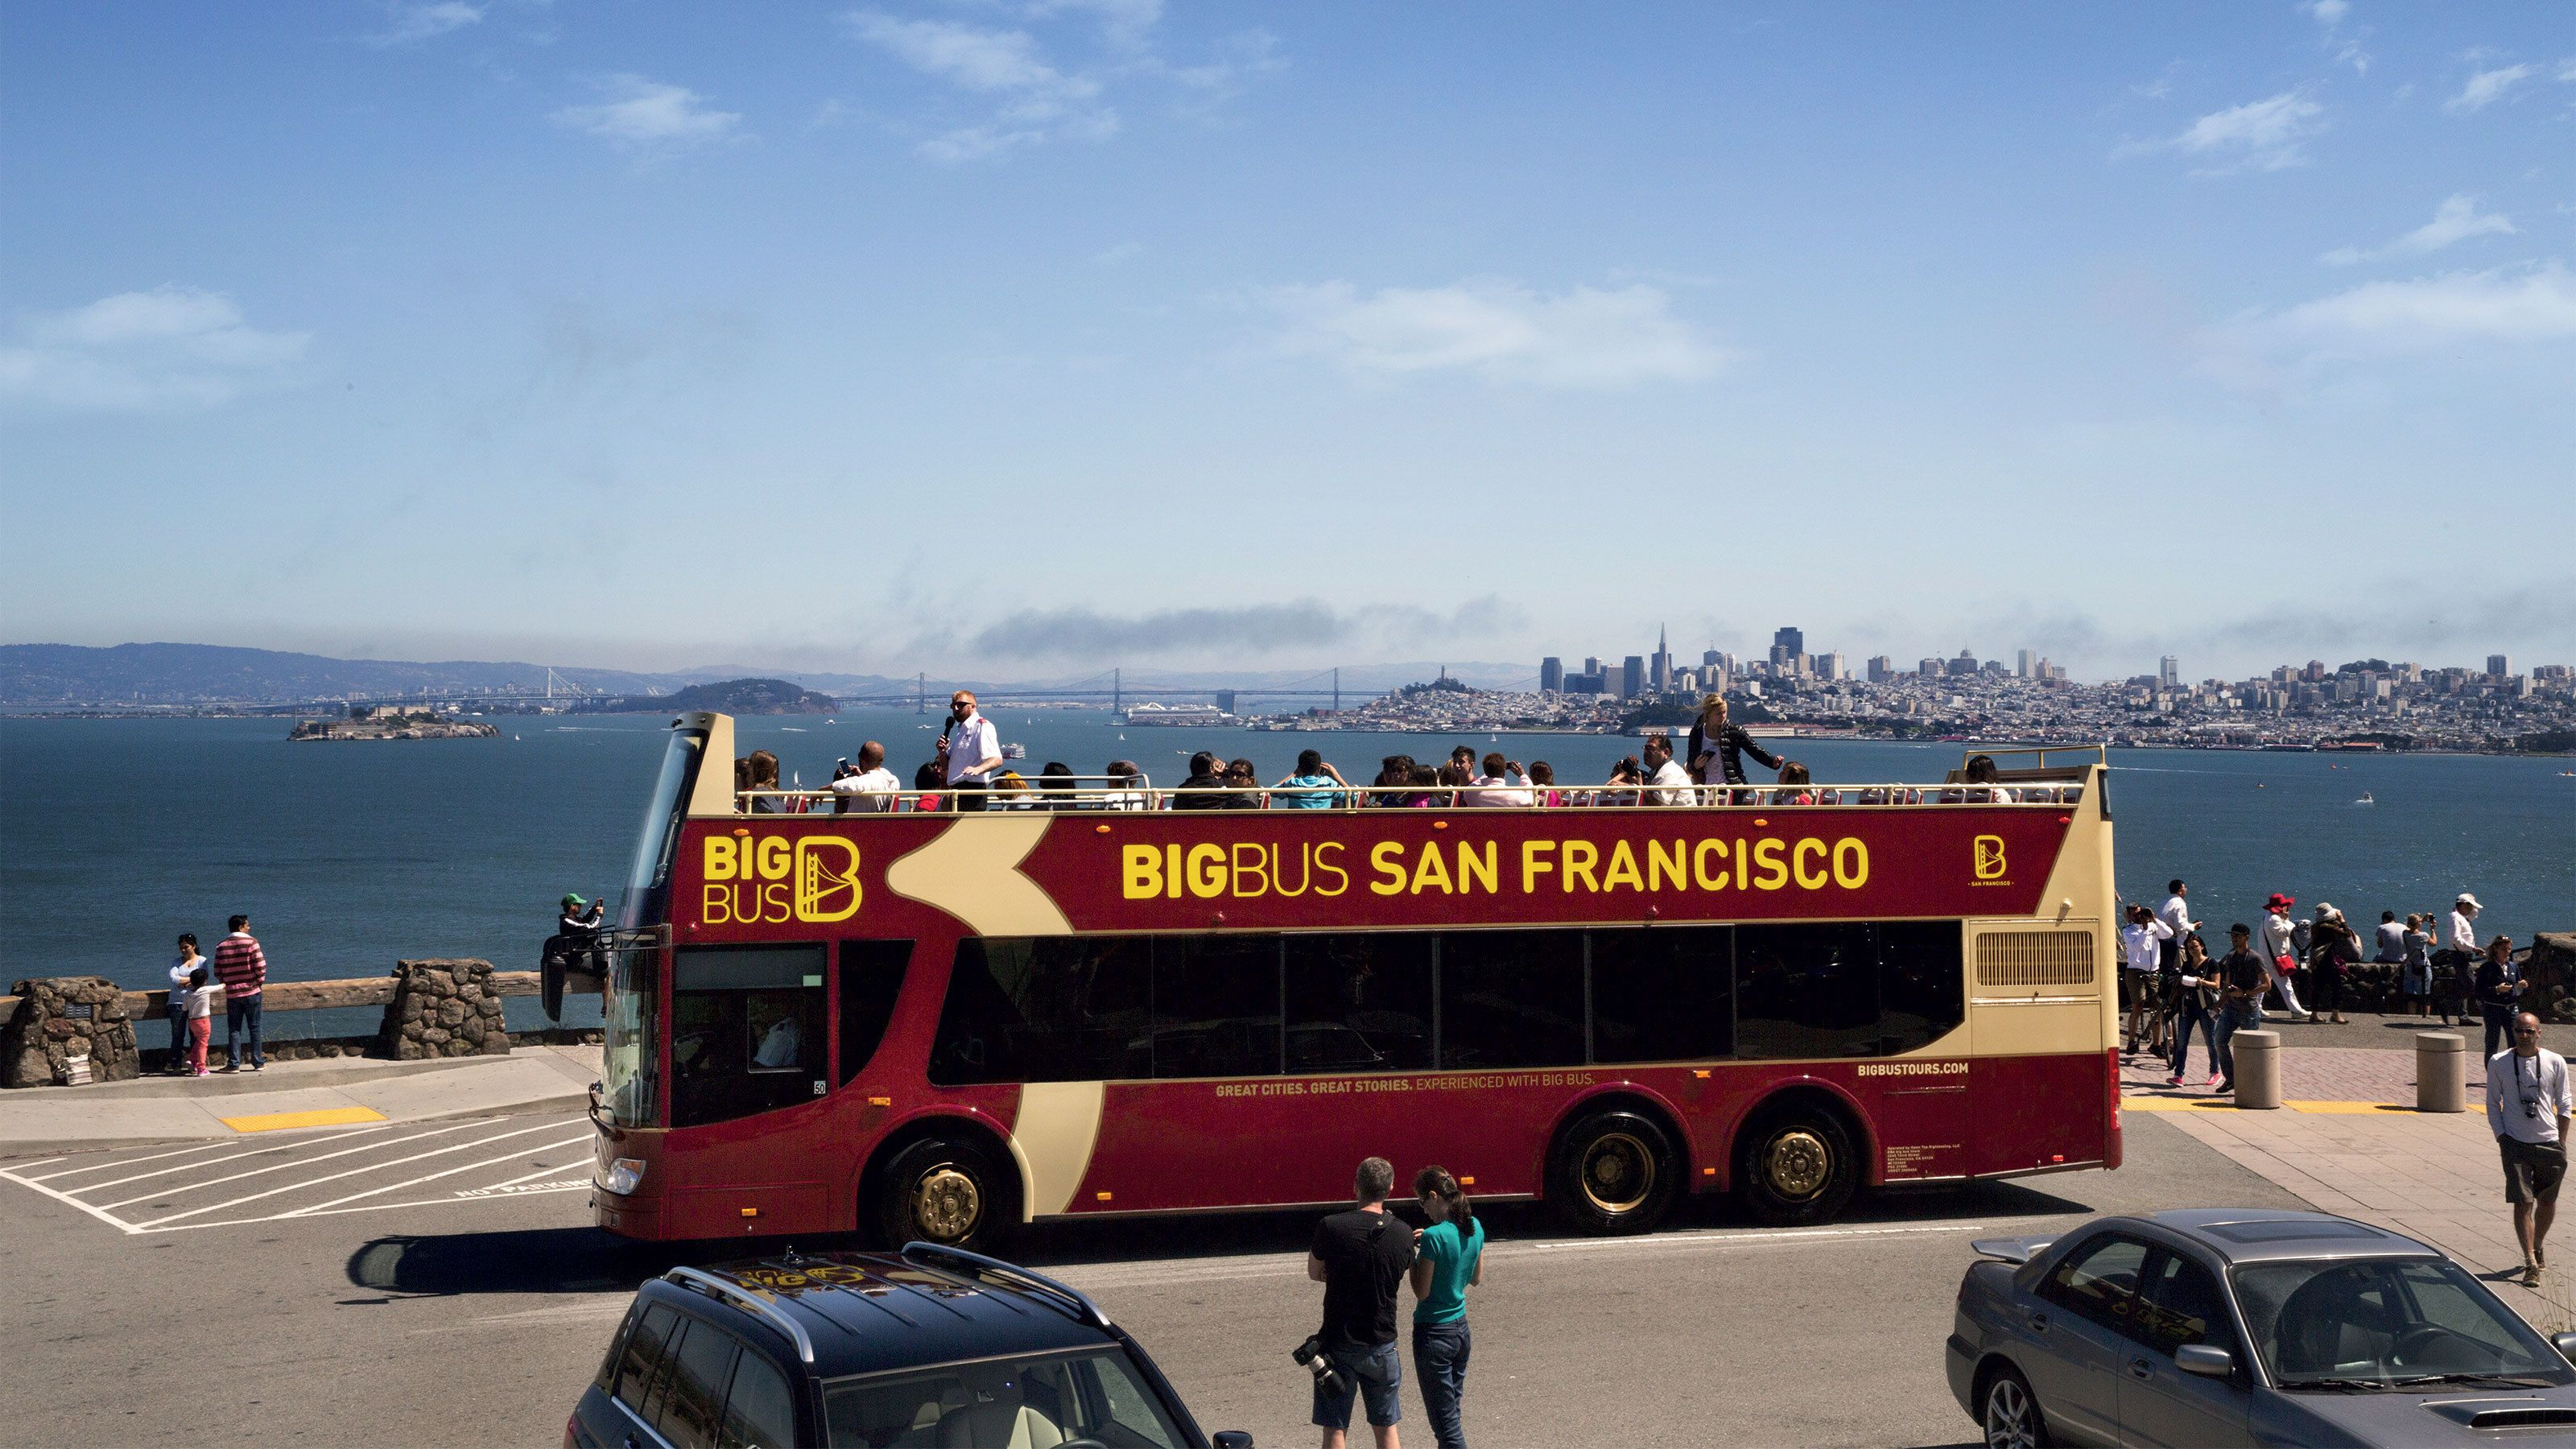 Big Bus Sightseeing bus at the waterfront in San Francisco